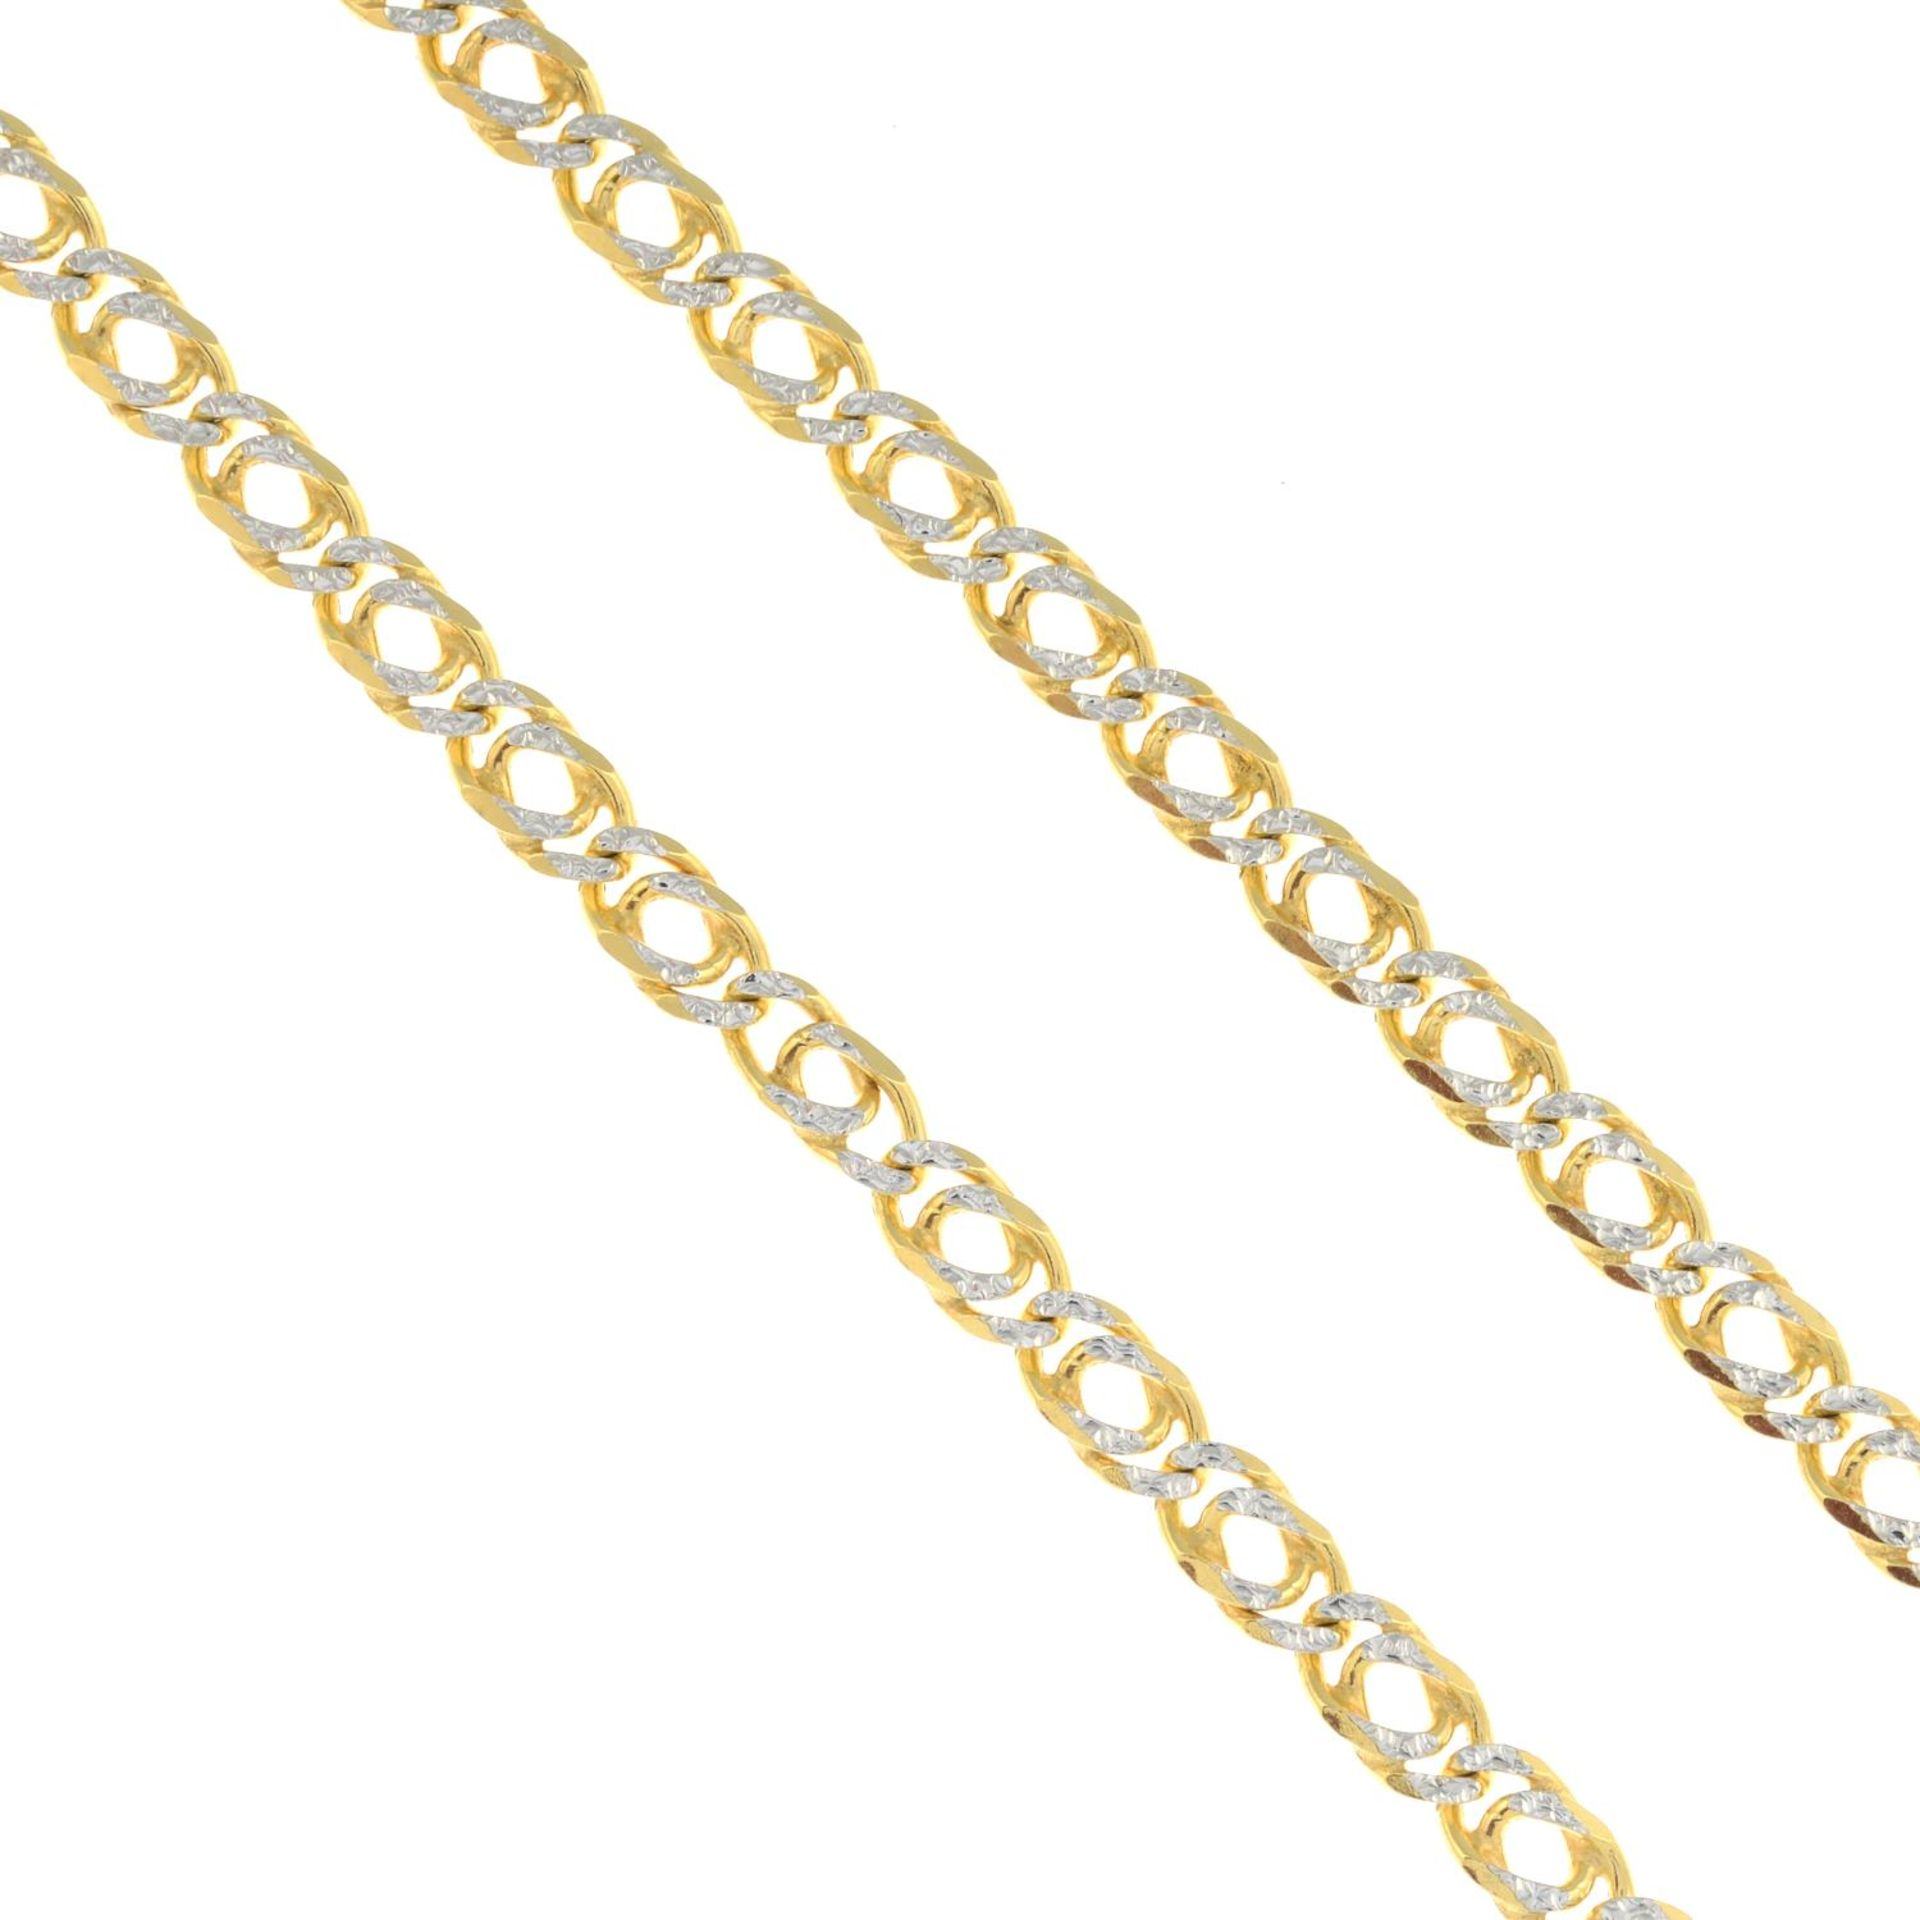 A 9ct gold bi-colour curb-link chain.Hallmarks for 9ct gold.